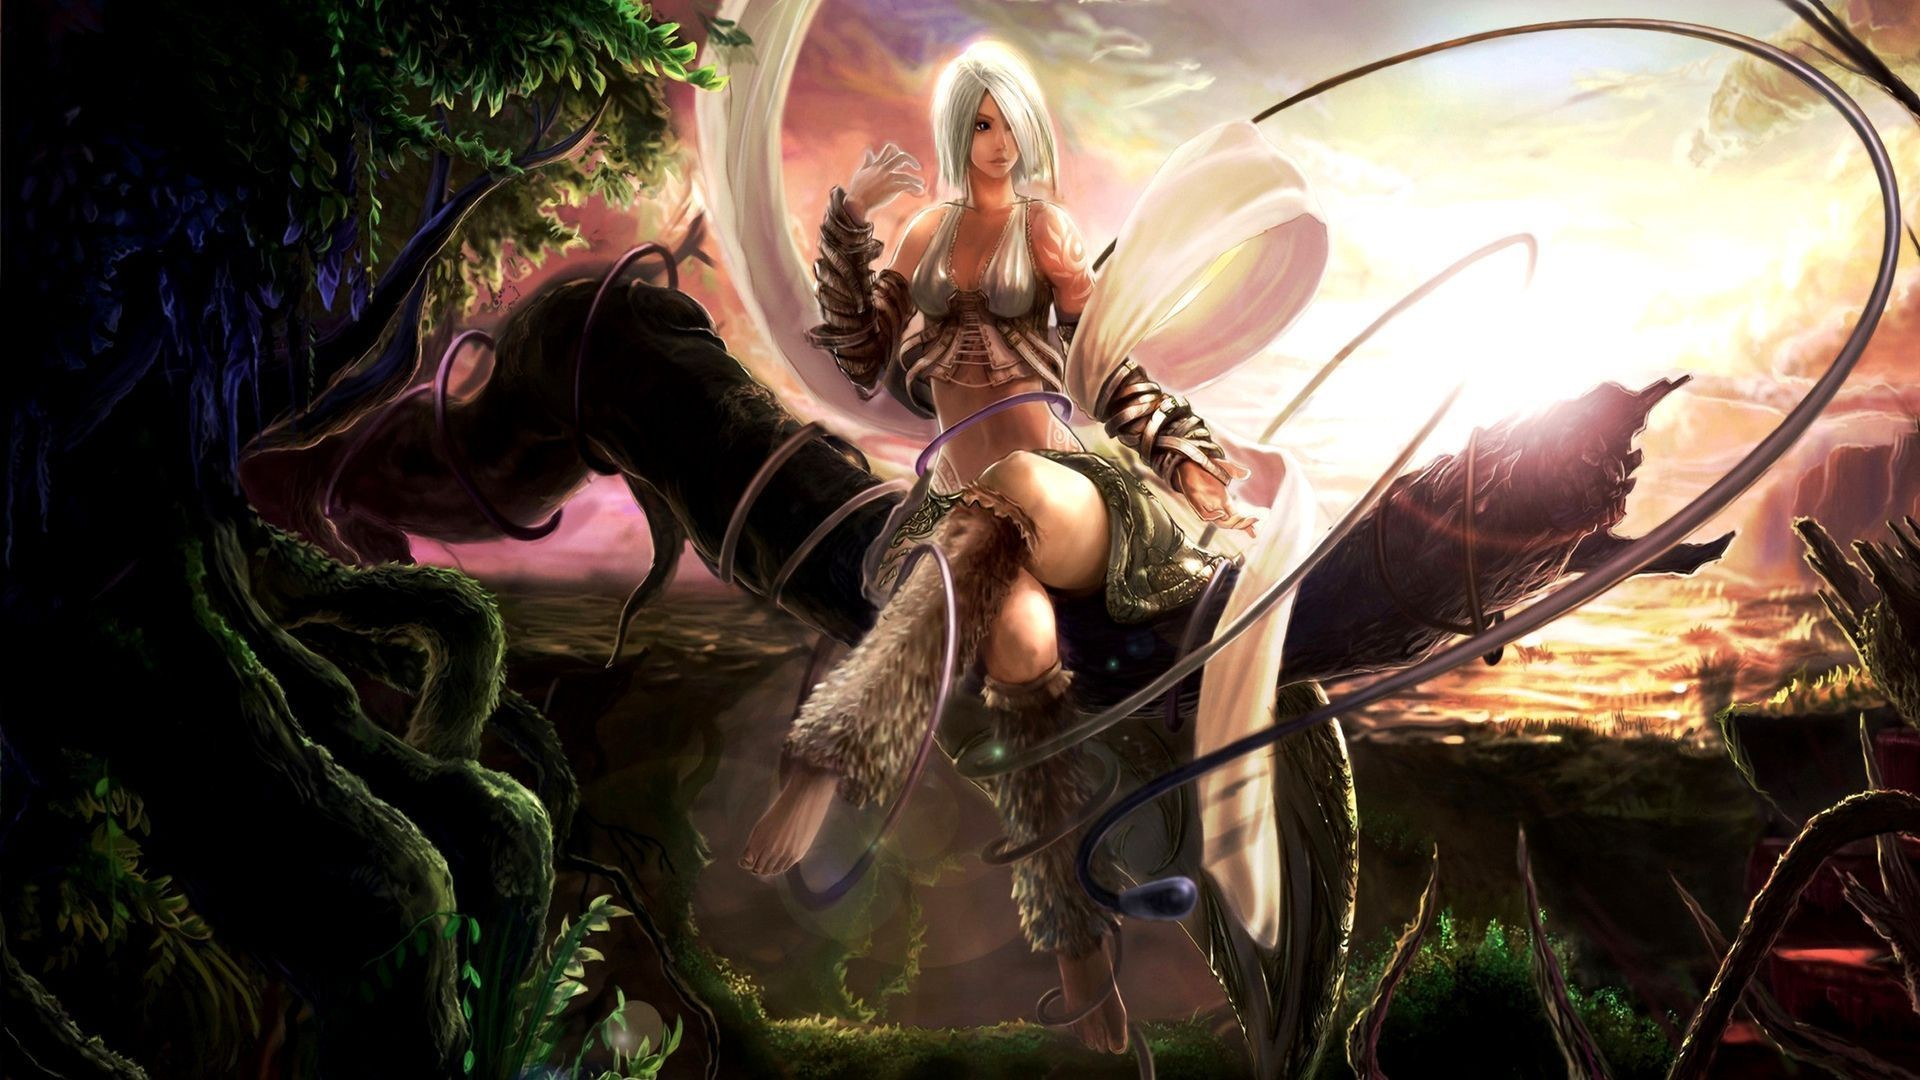 Res: 1920x1080, Wallpapers-Of-Fantasy-Gallery-(74-Plus)-PIC-WPW3012616